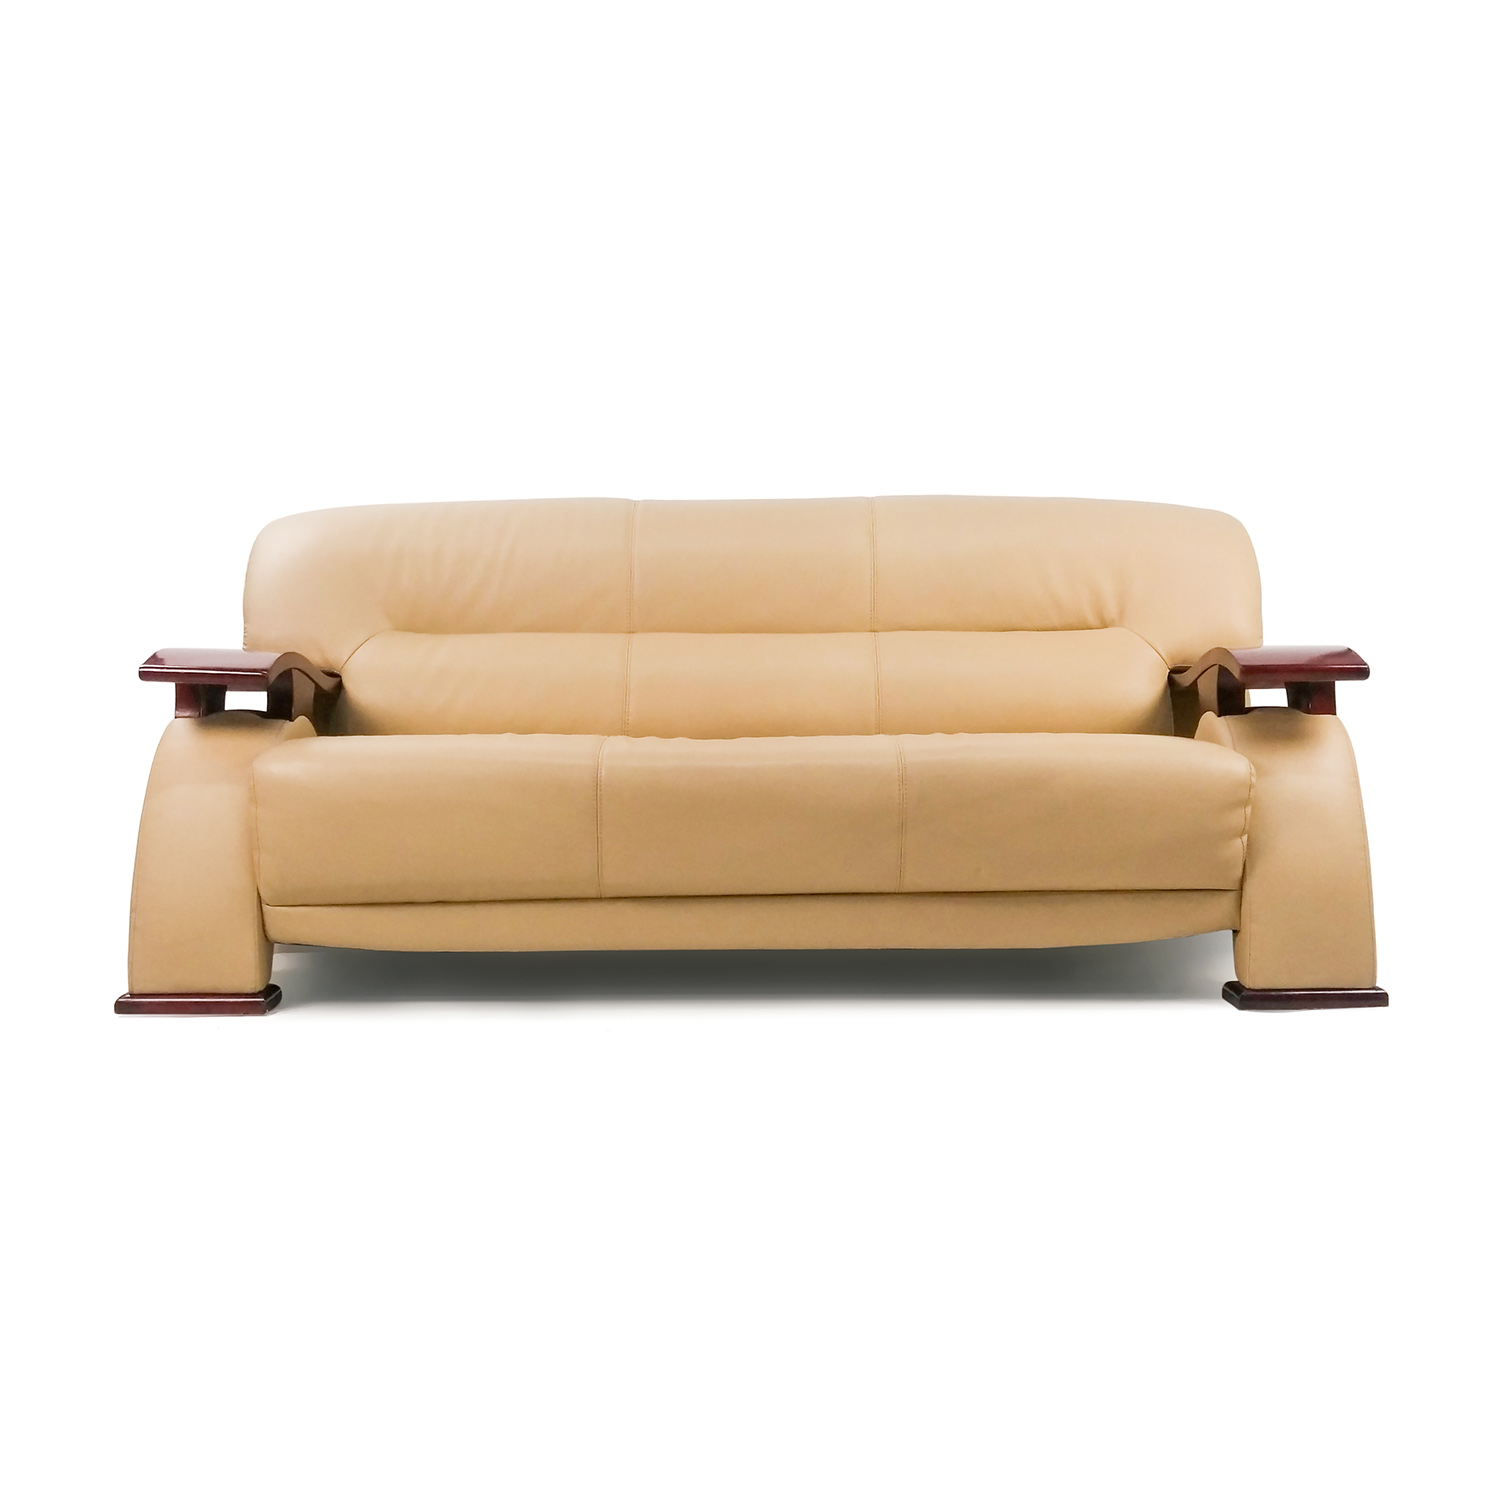 Fresh Contemporary Leather Sofa Marmsweb Marmsweb